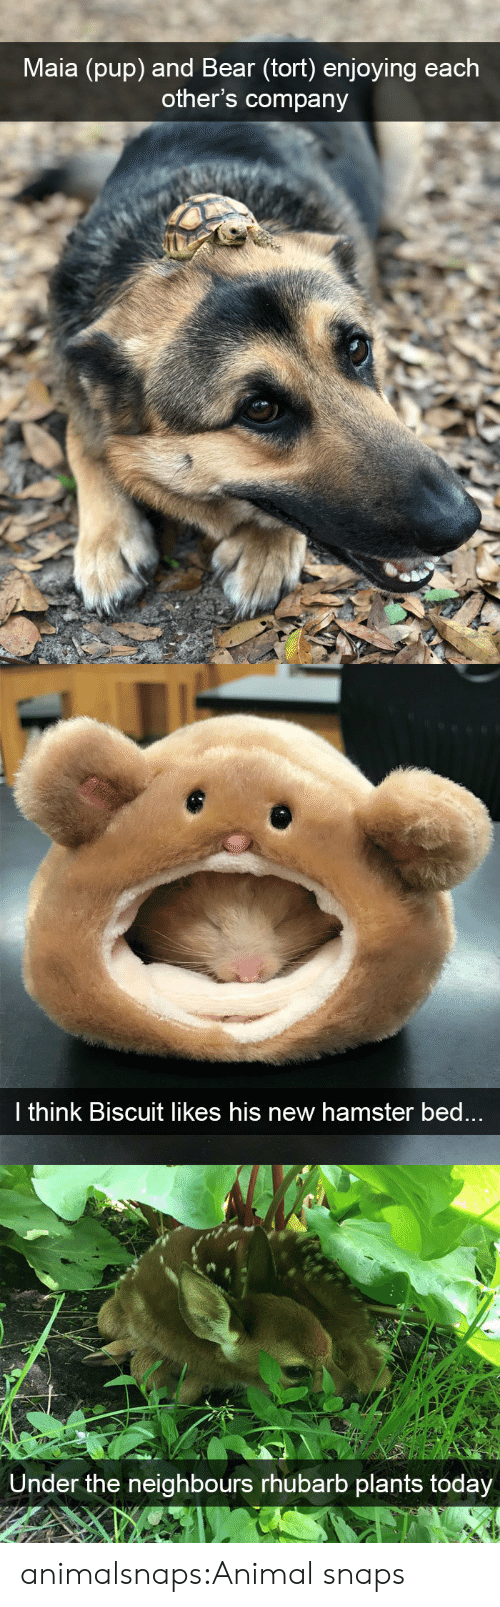 Target, Tumblr, and Animal: Maia (pup) and Bear (tort) enjoying each  other's company   l think Biscuit likes his new hamster bed   Under the neighbours rhubarb plants today animalsnaps:Animal snaps